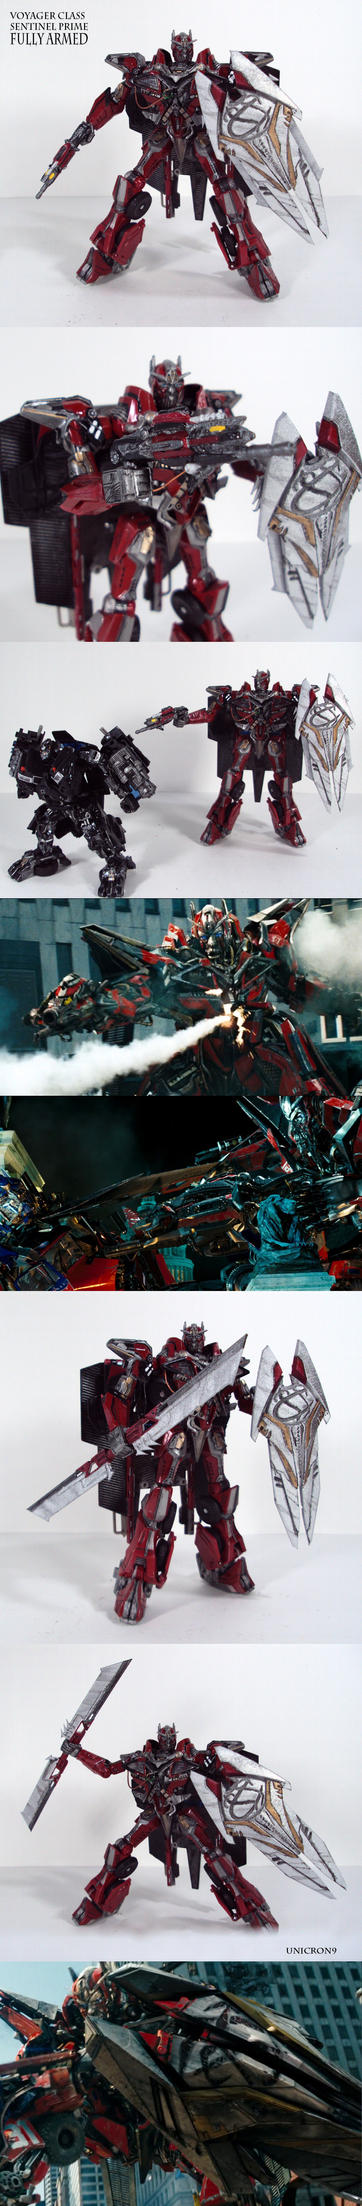 Ultimate DOTM Voyager Sentinel Prime by Unicron9